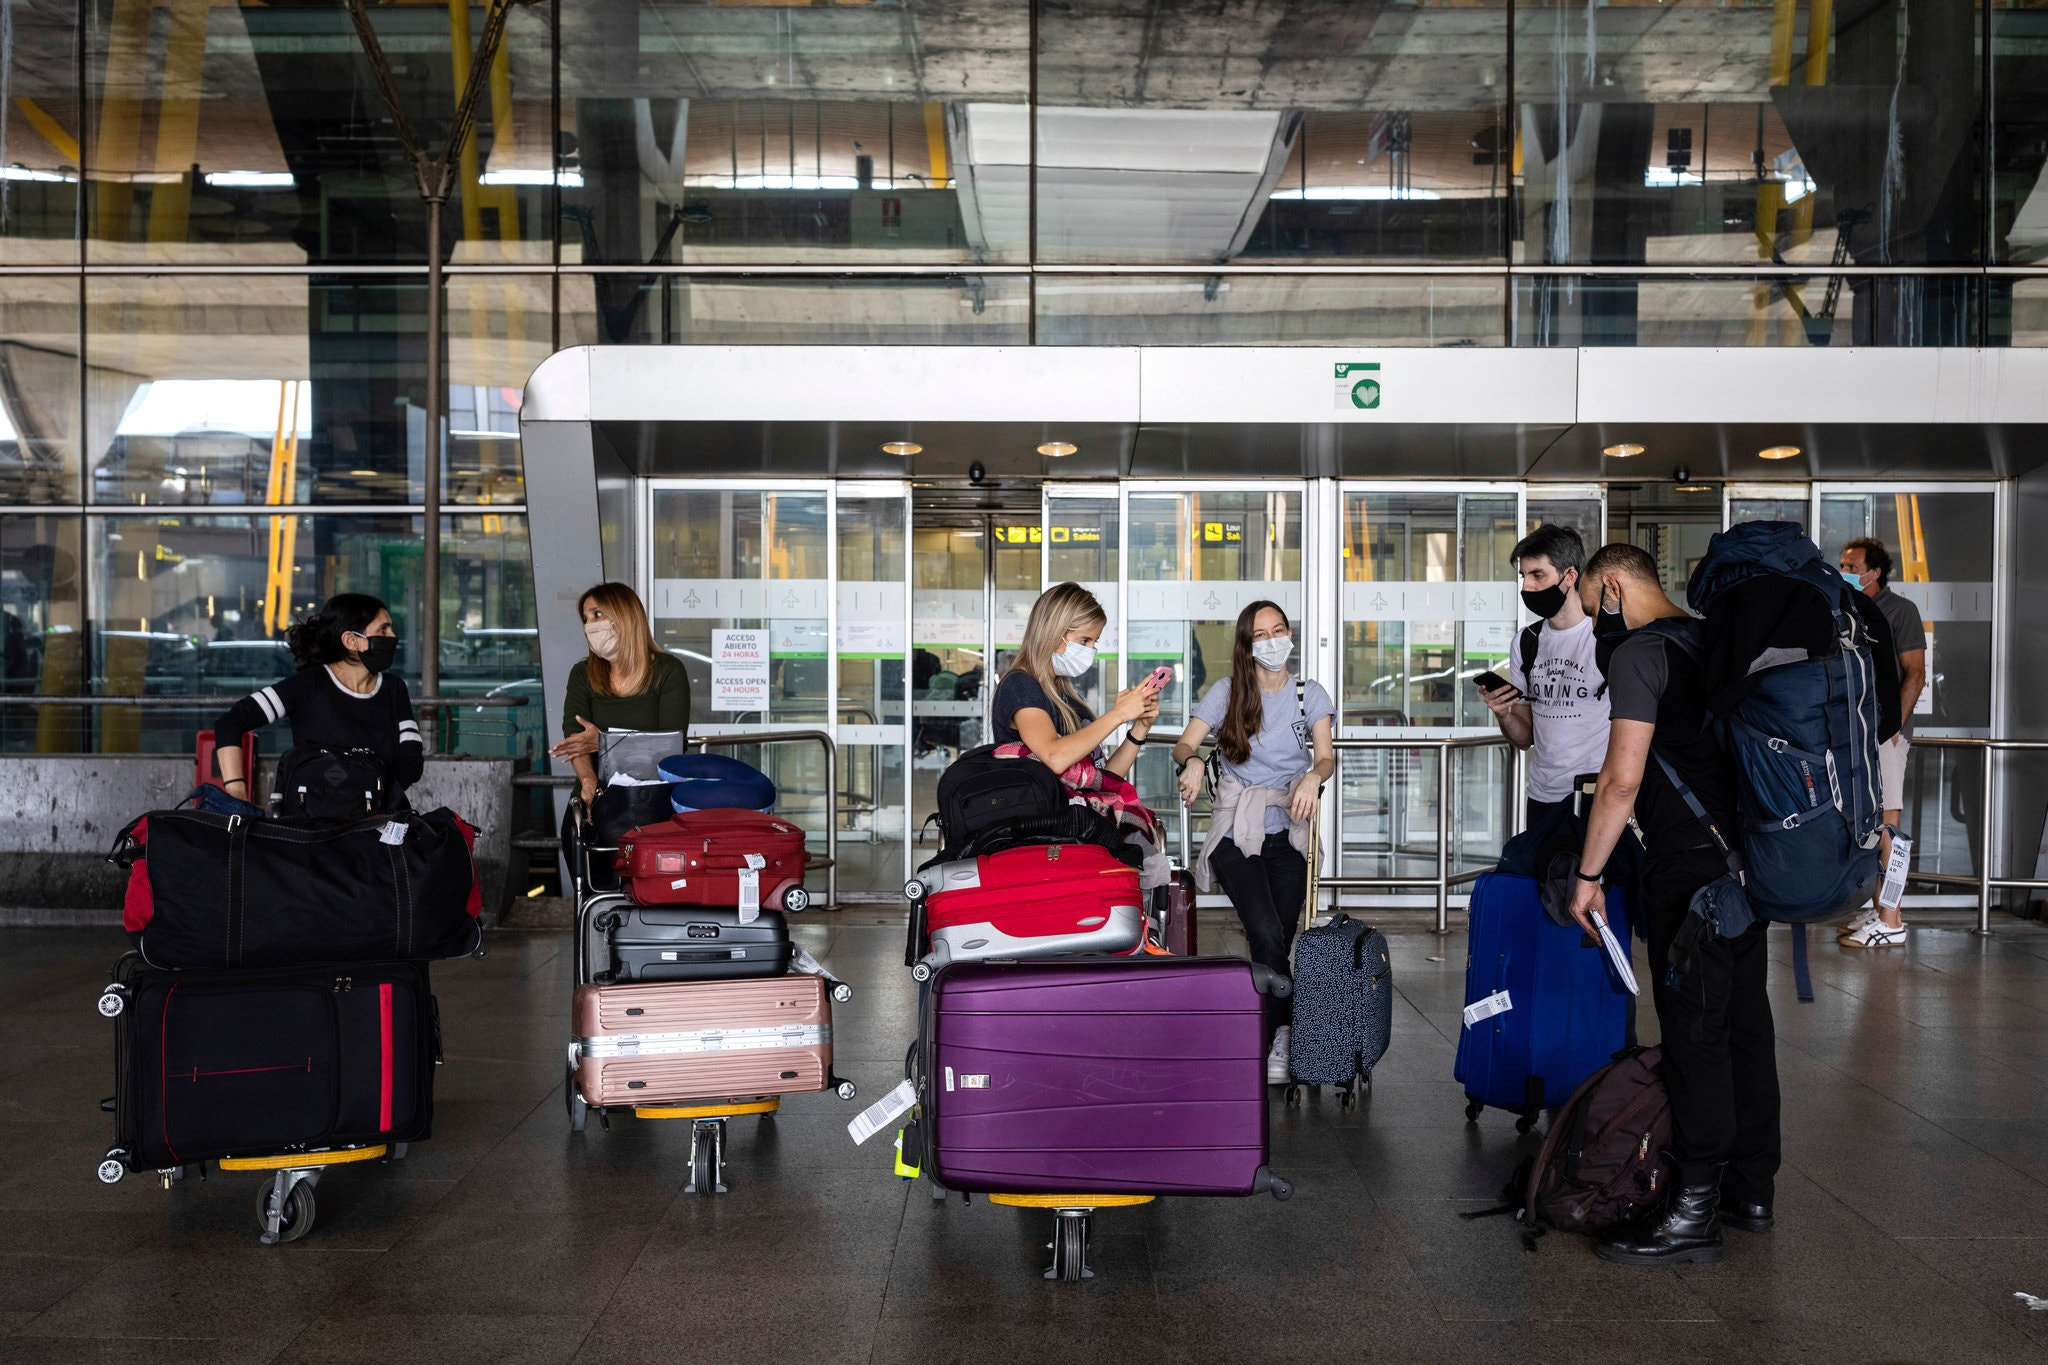 EU May Bar American Travelers As It Reopens Borders, Citing Failures On Virus